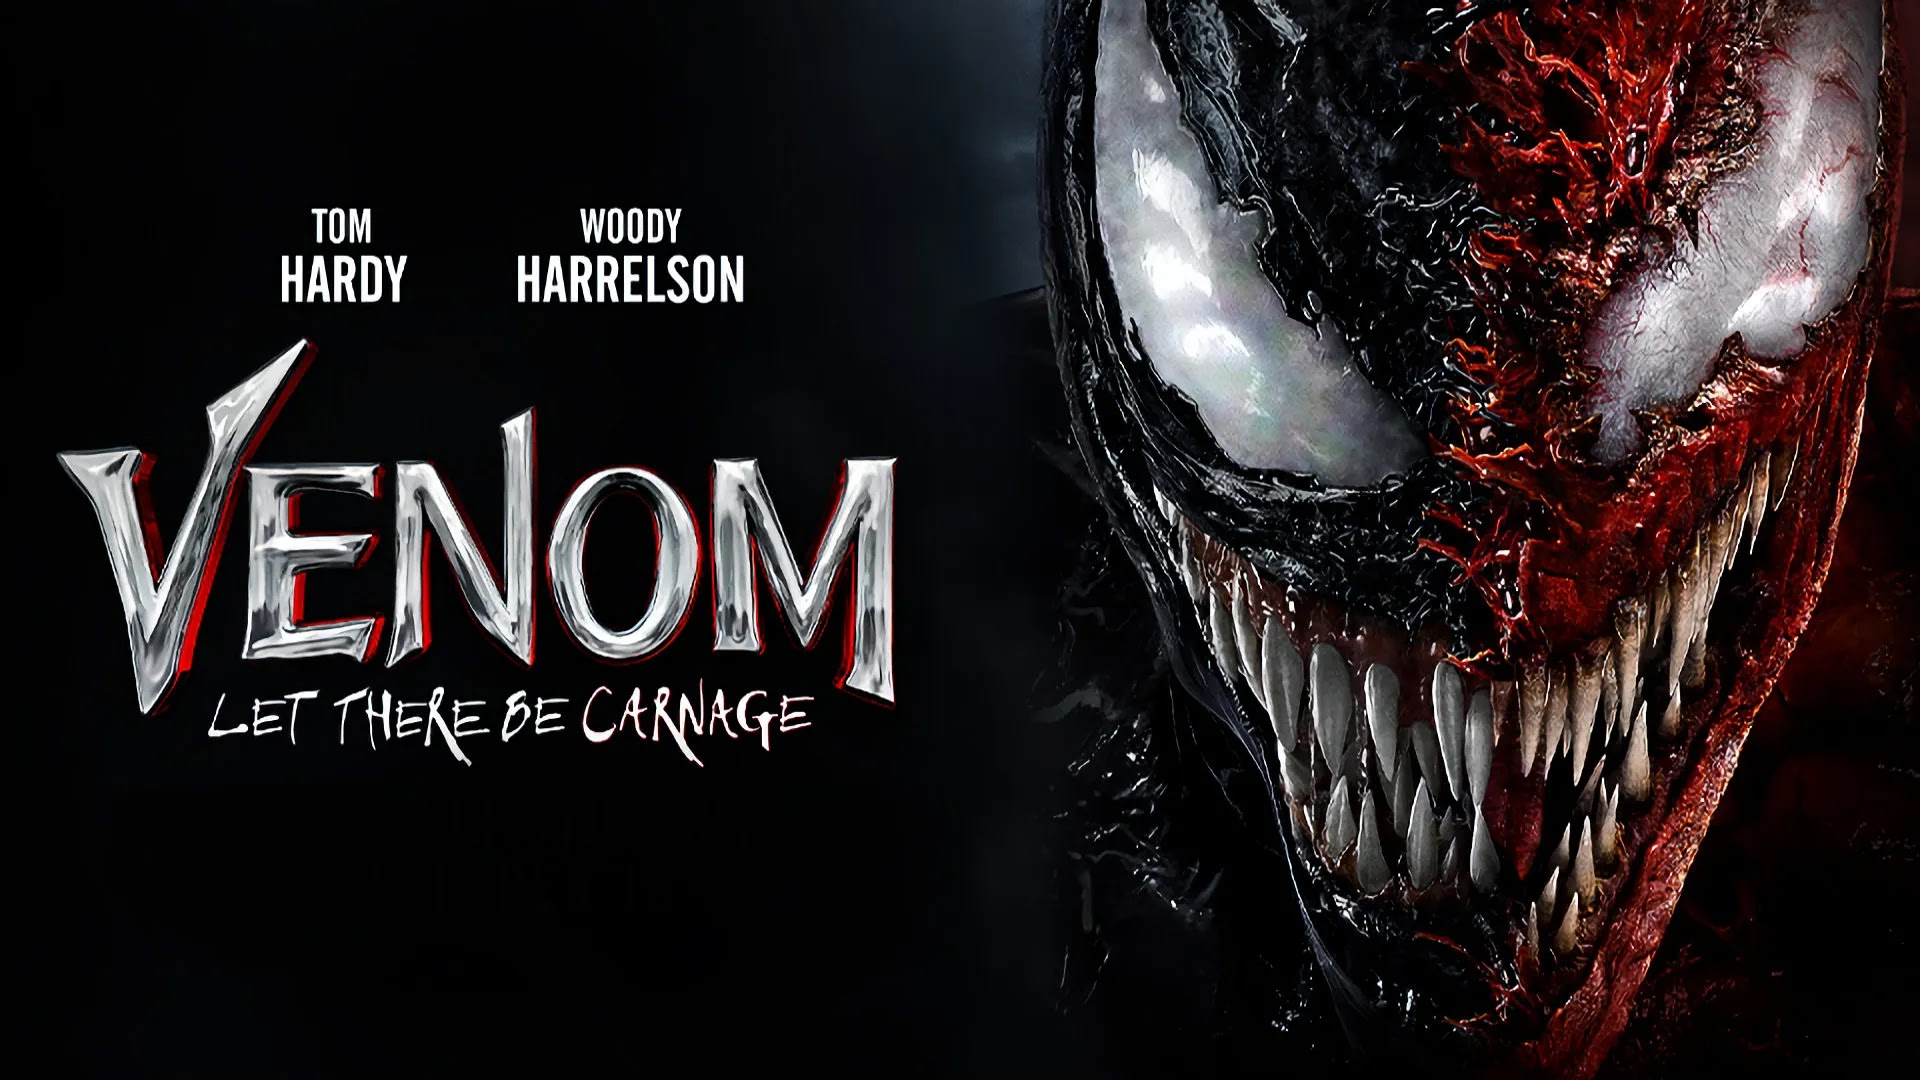 HD wallpaper Venom: Let There Be Carnage review